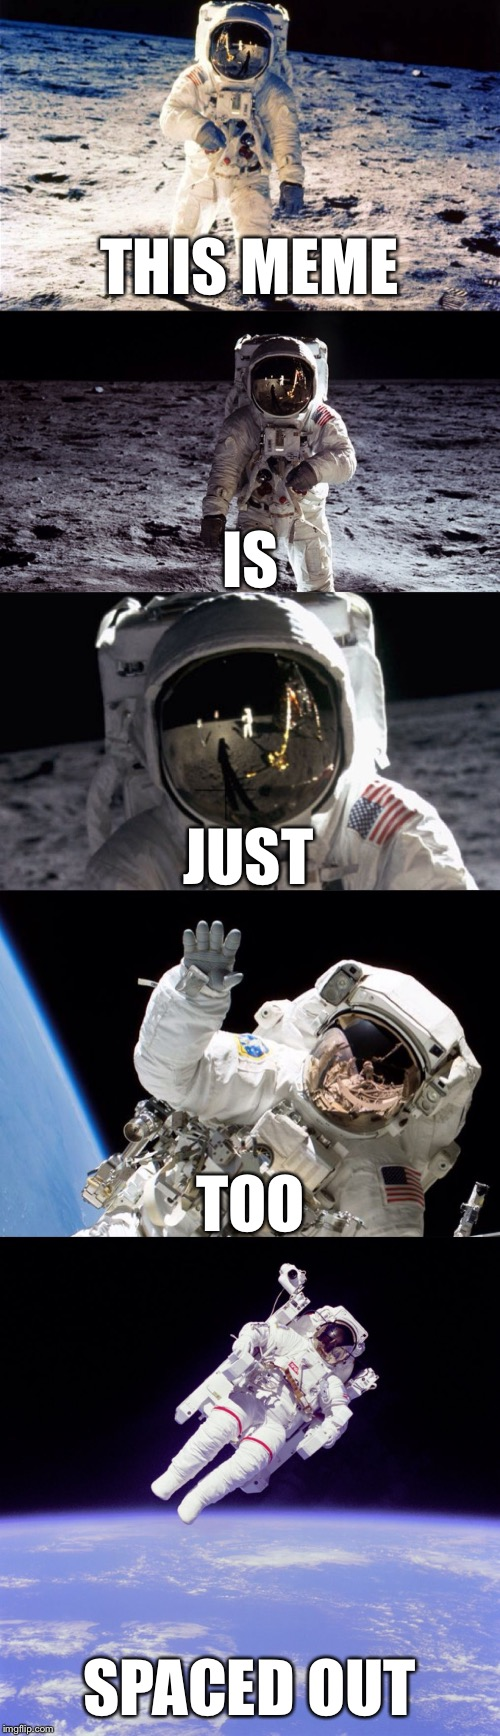 astronaut in space meme - photo #17